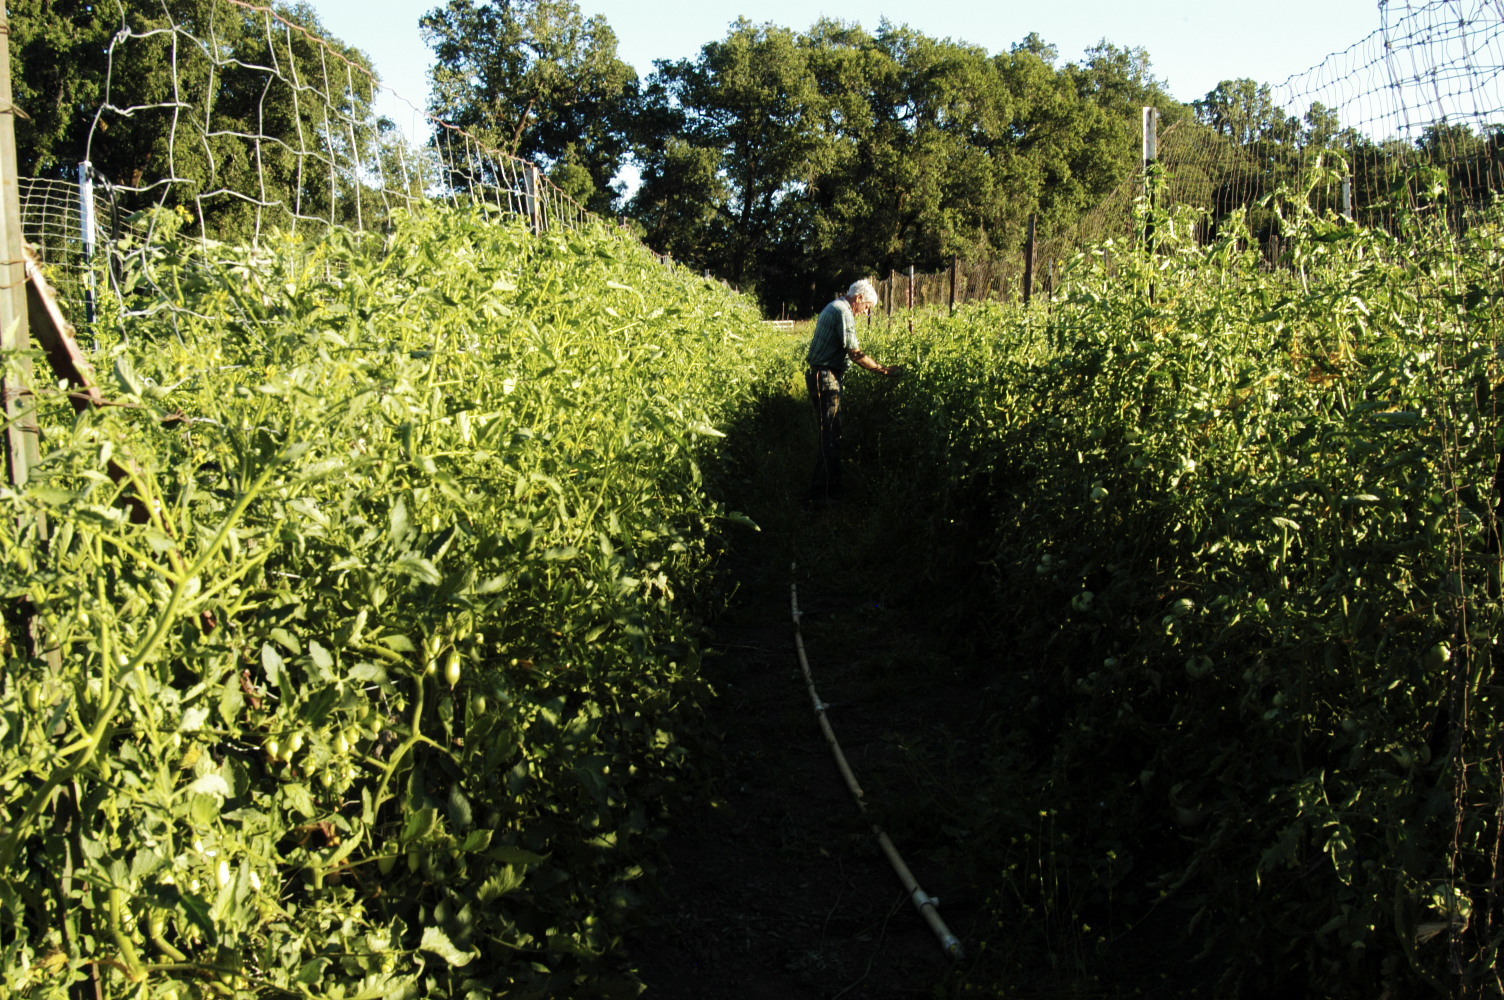 Here is a photo of my farmer-mentor, Stephen Decater, working in the tomato wall at Live Power Community Farm, in Covelo, CA, July 2010. Stephen was a student of Alan Chadwick's and learned this training and pruning method from him, directly.